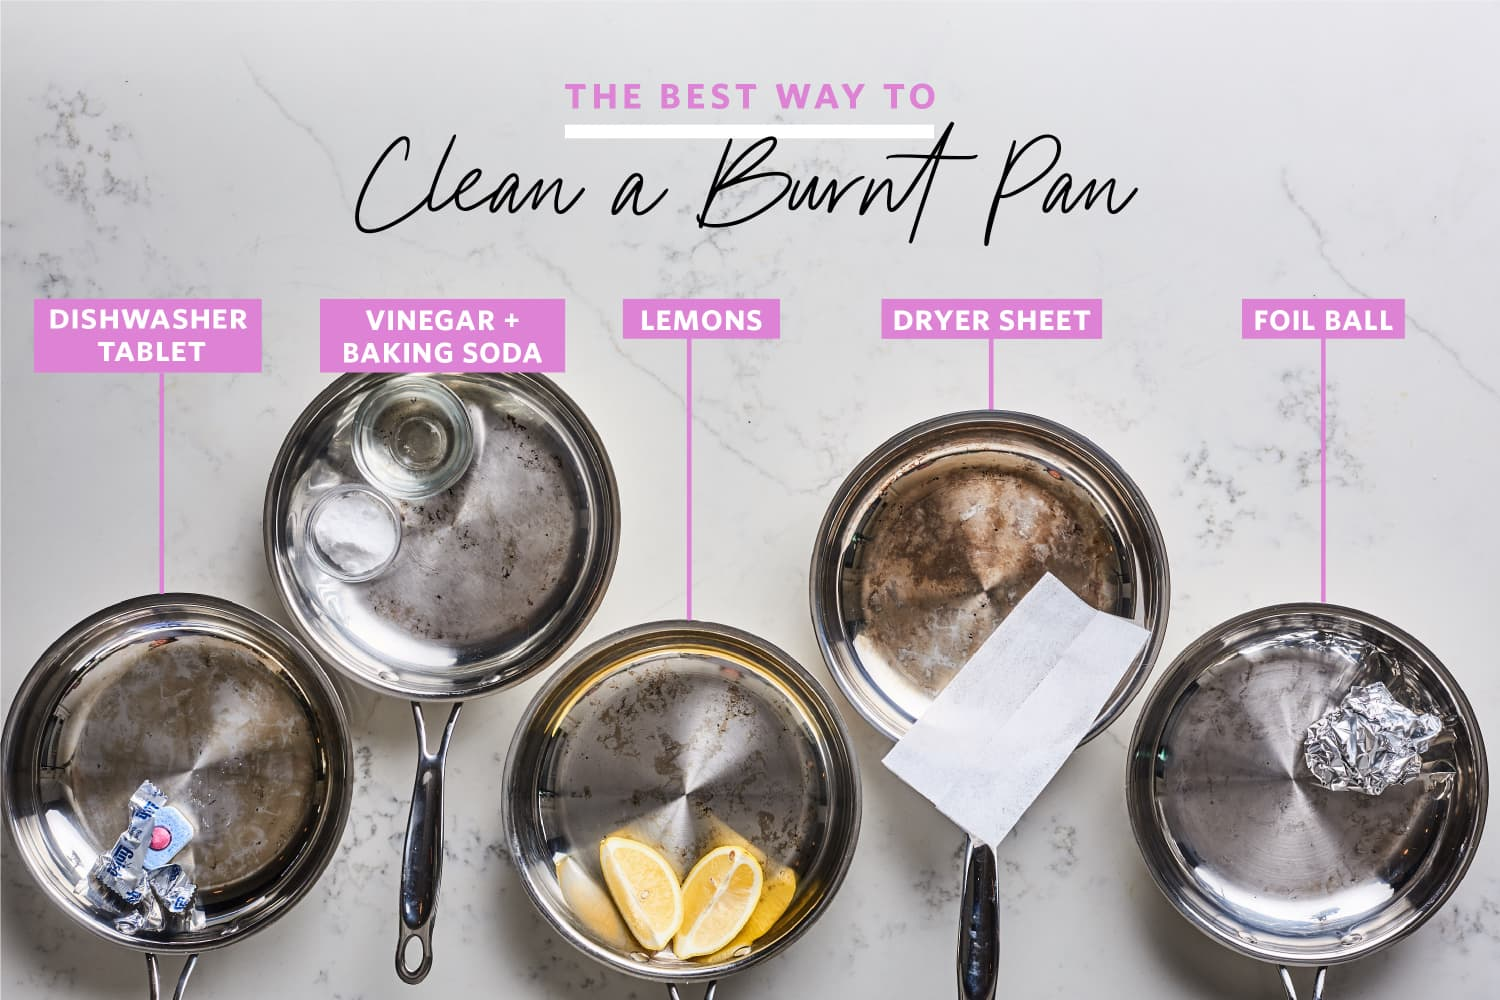 We Tried 5 Methods for Cleaning a Burnt Pan and Found a Clear Winner